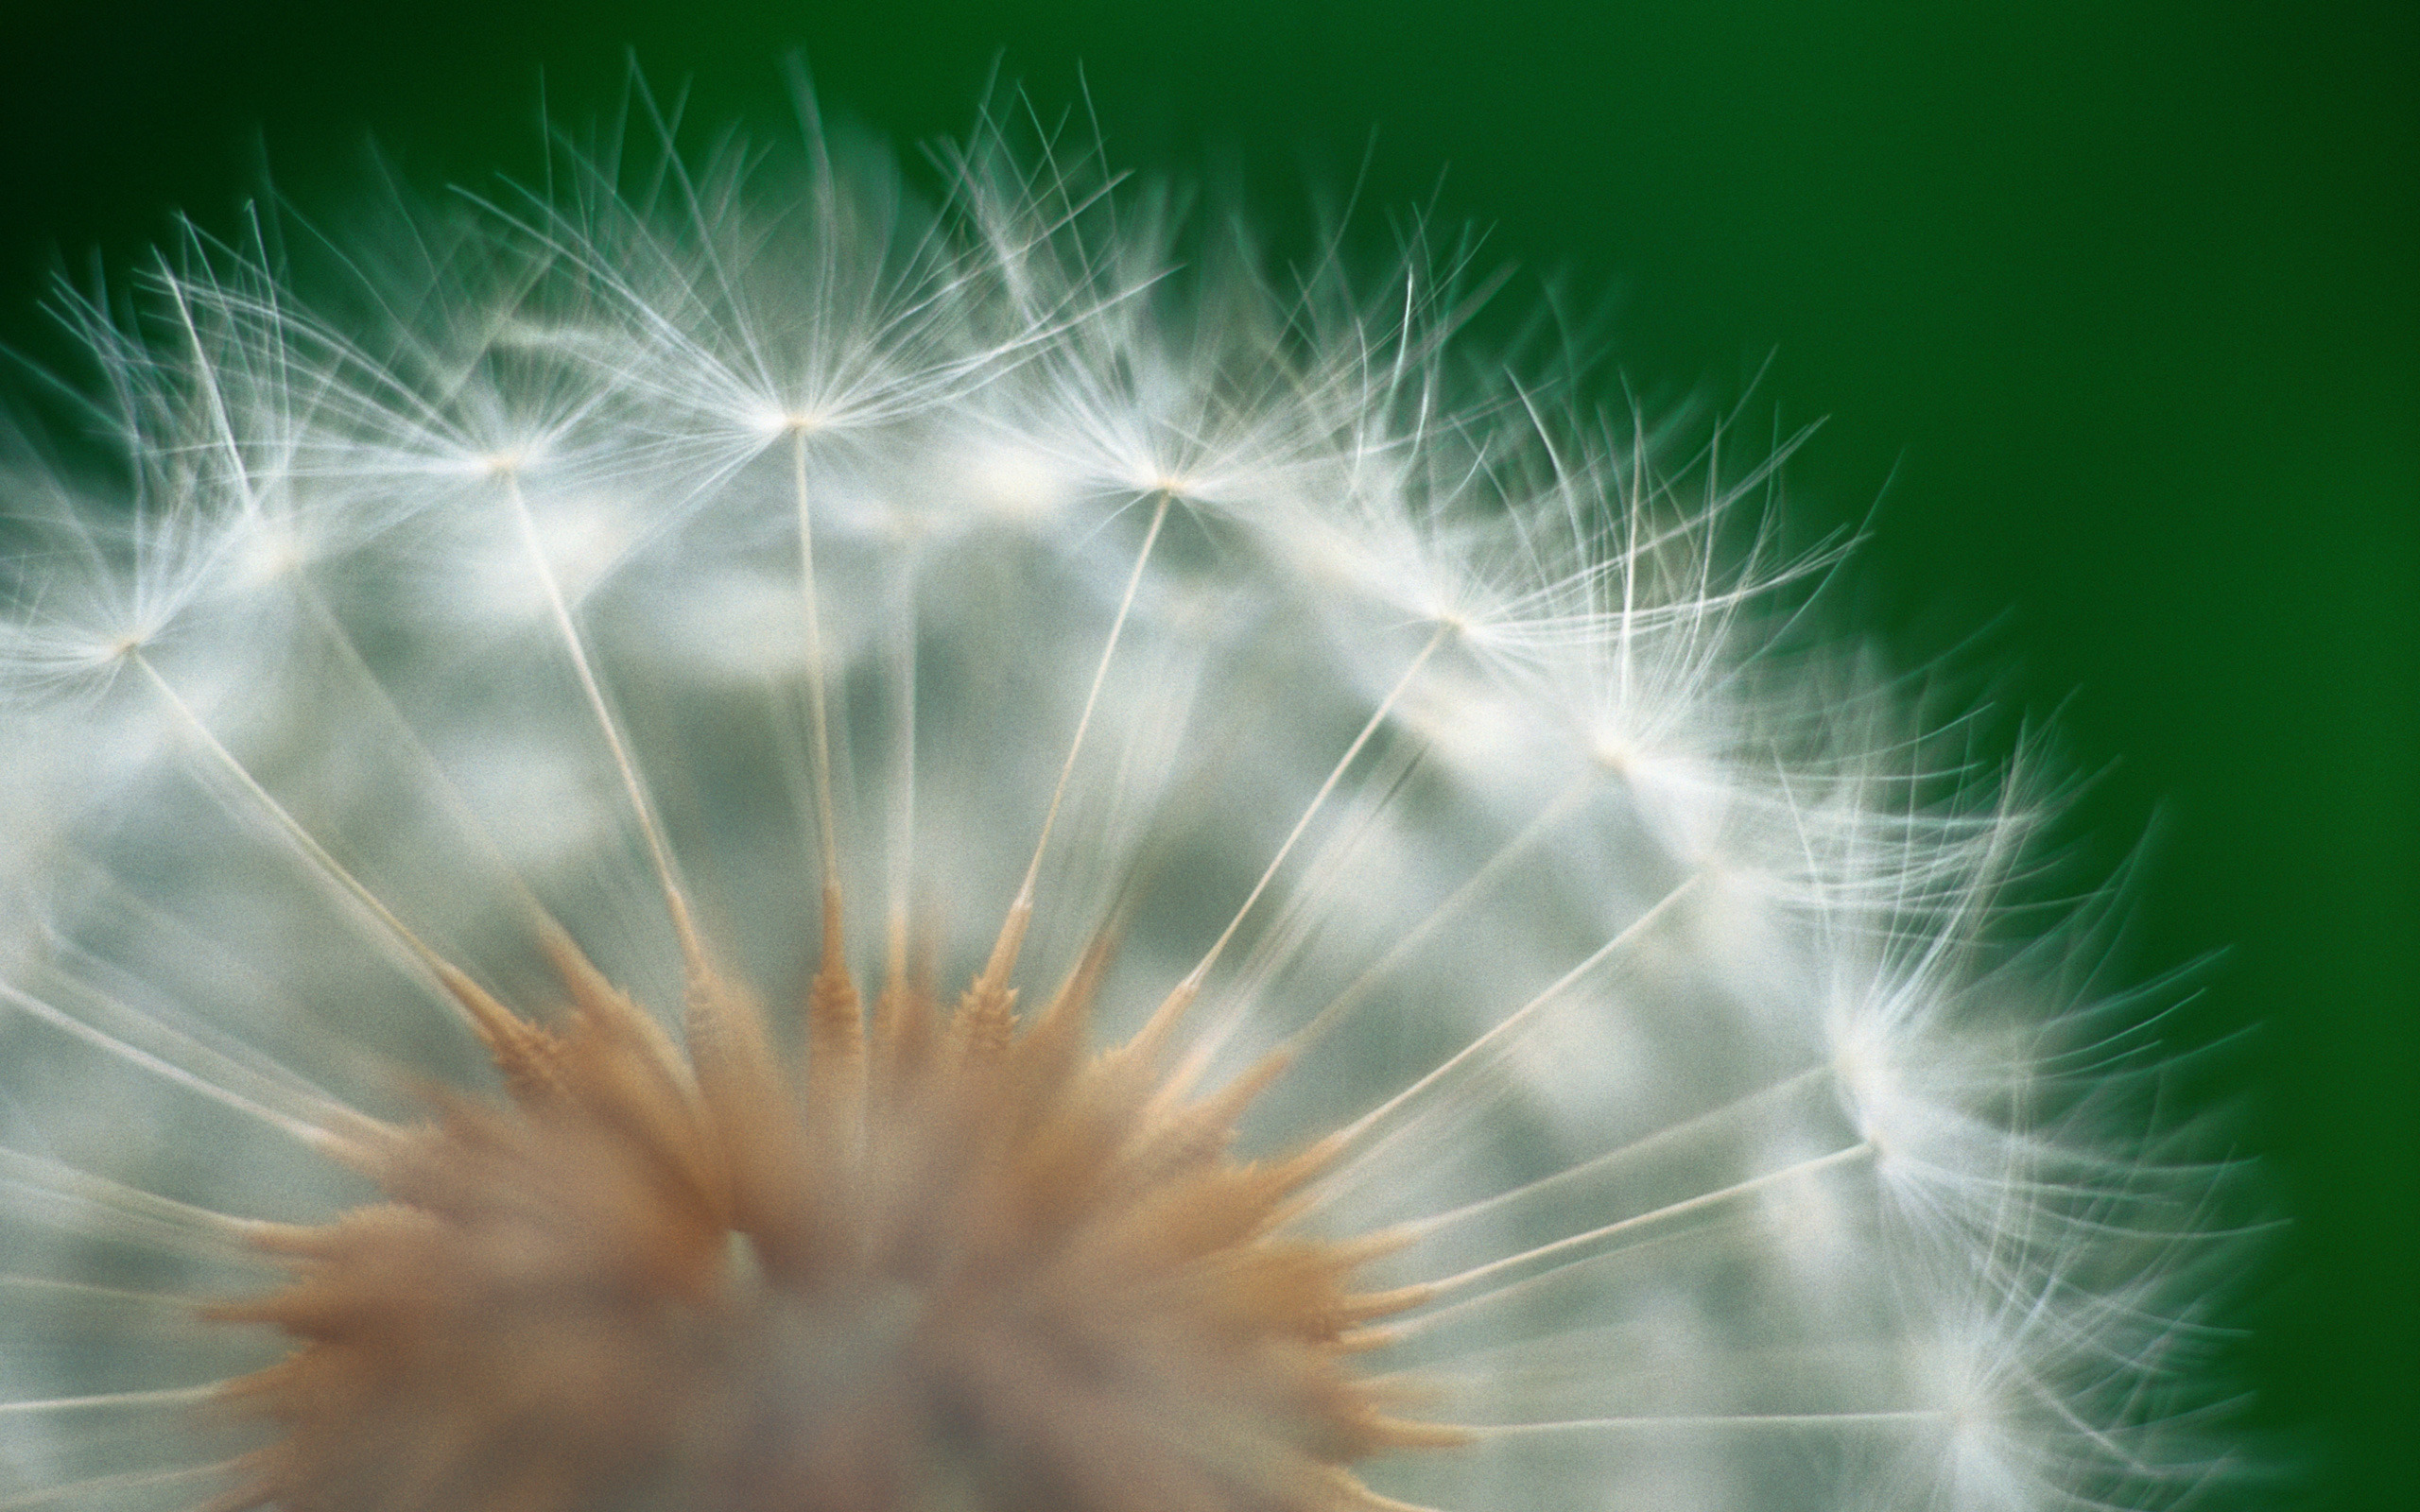 784342 Dandelion Wallpaper Desktop h784342 Flowers HD Wallpaper 2560x1600